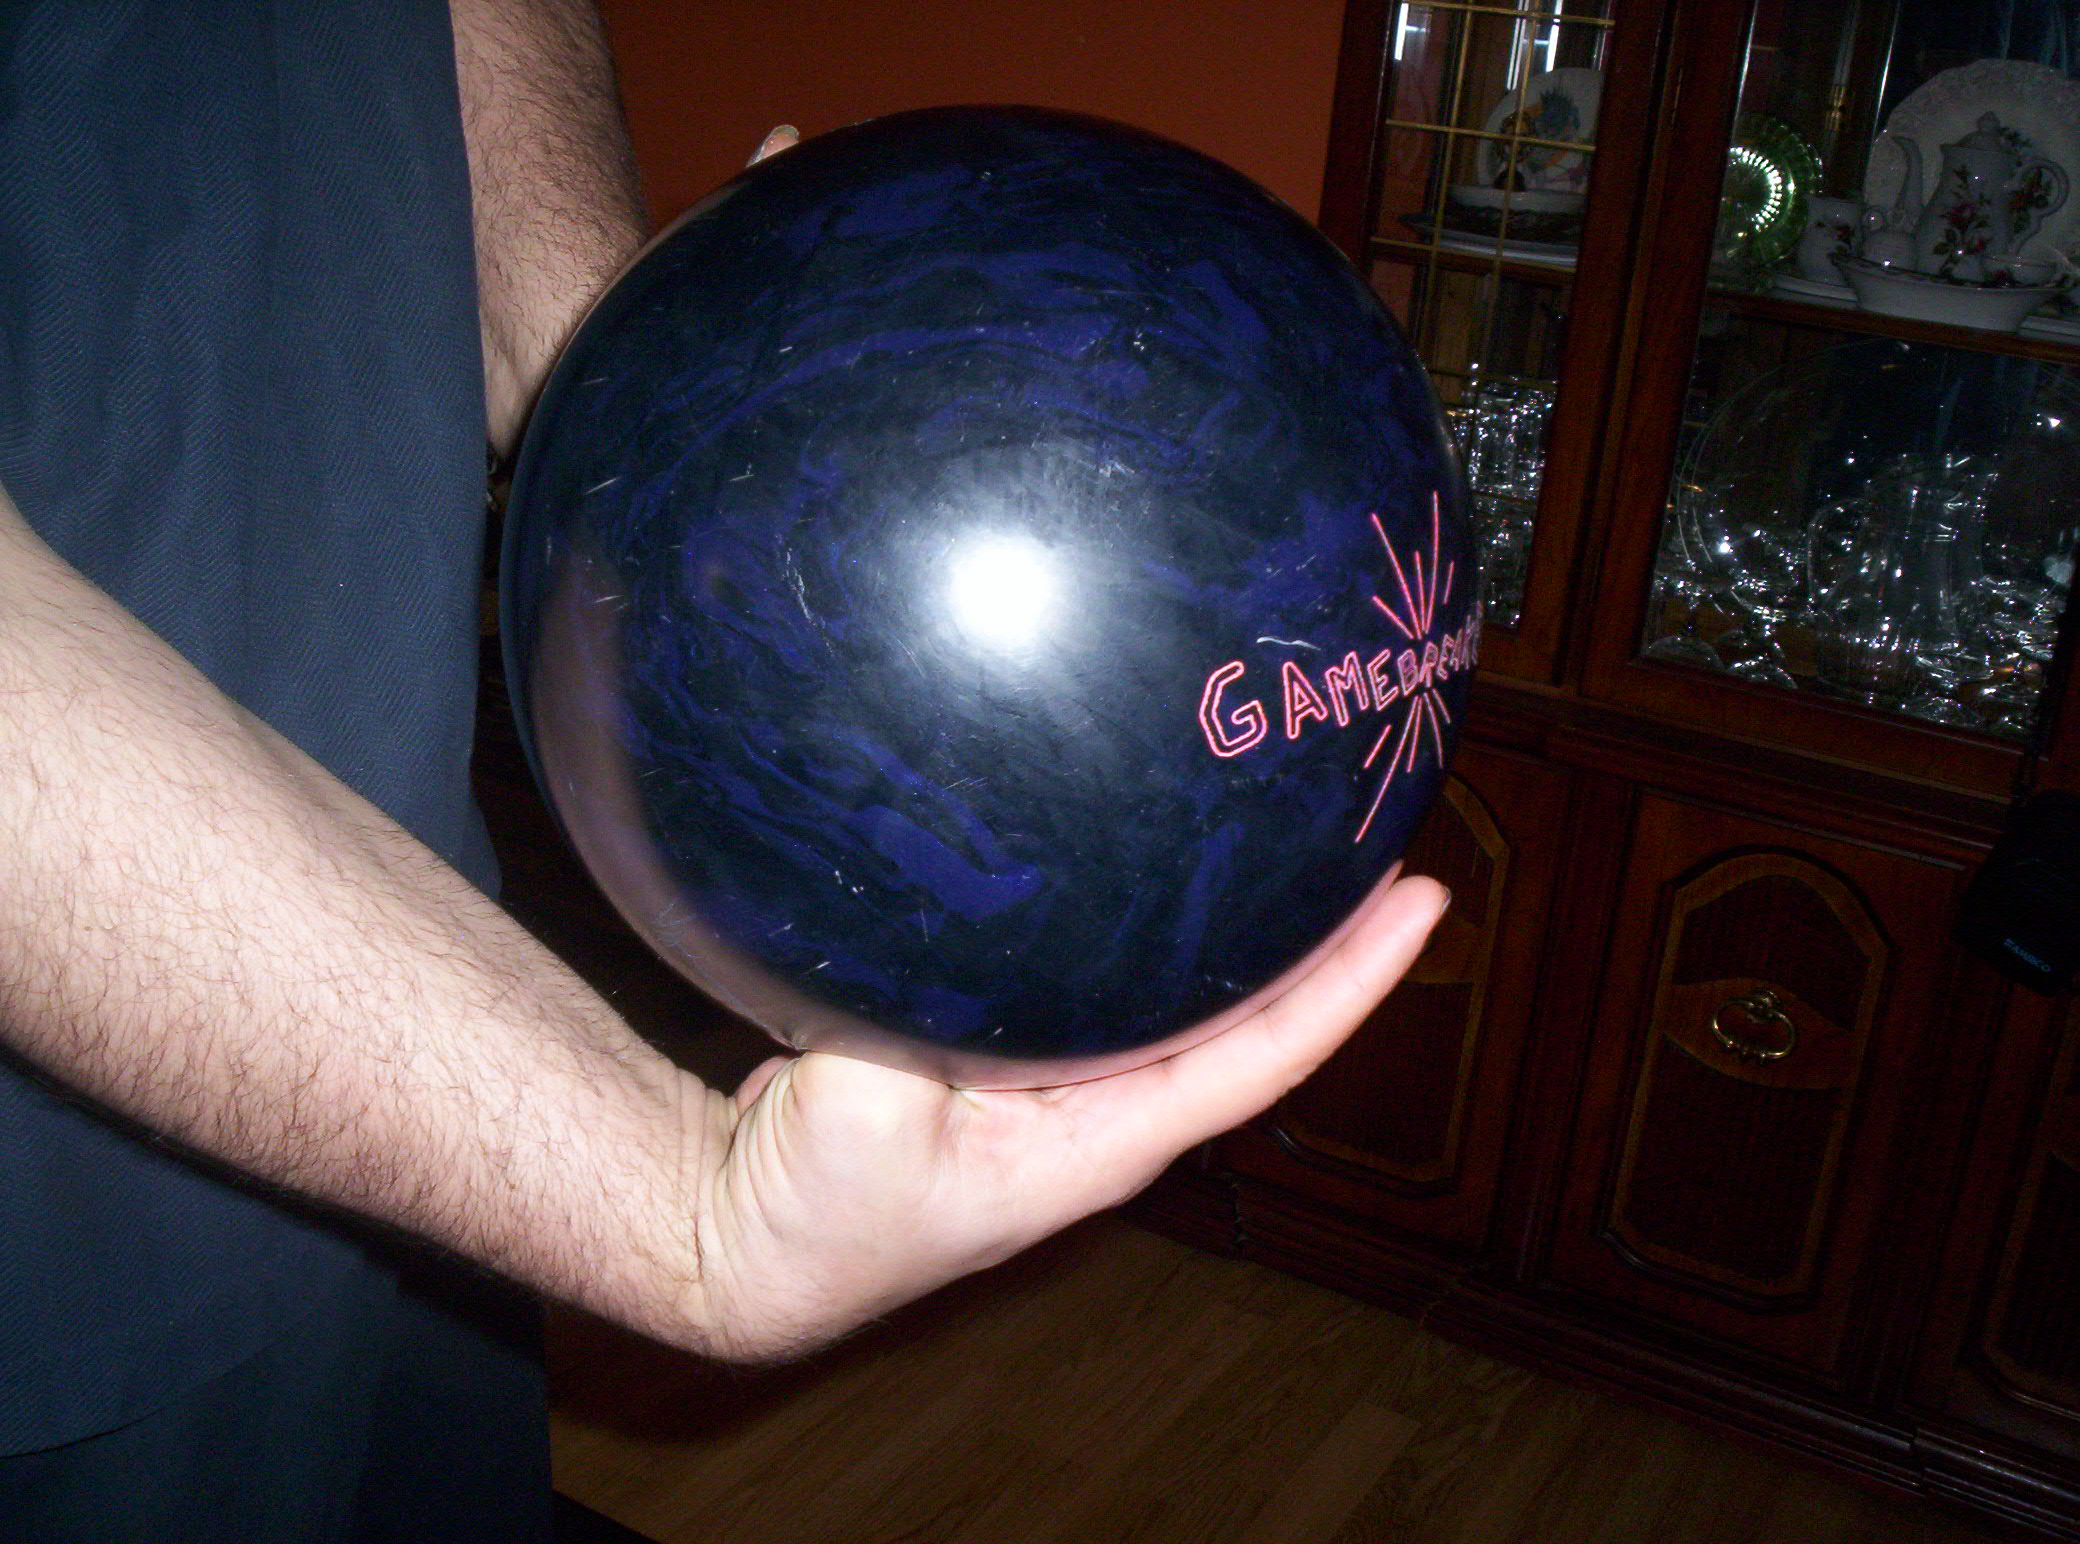 cupped, bowling wrist position